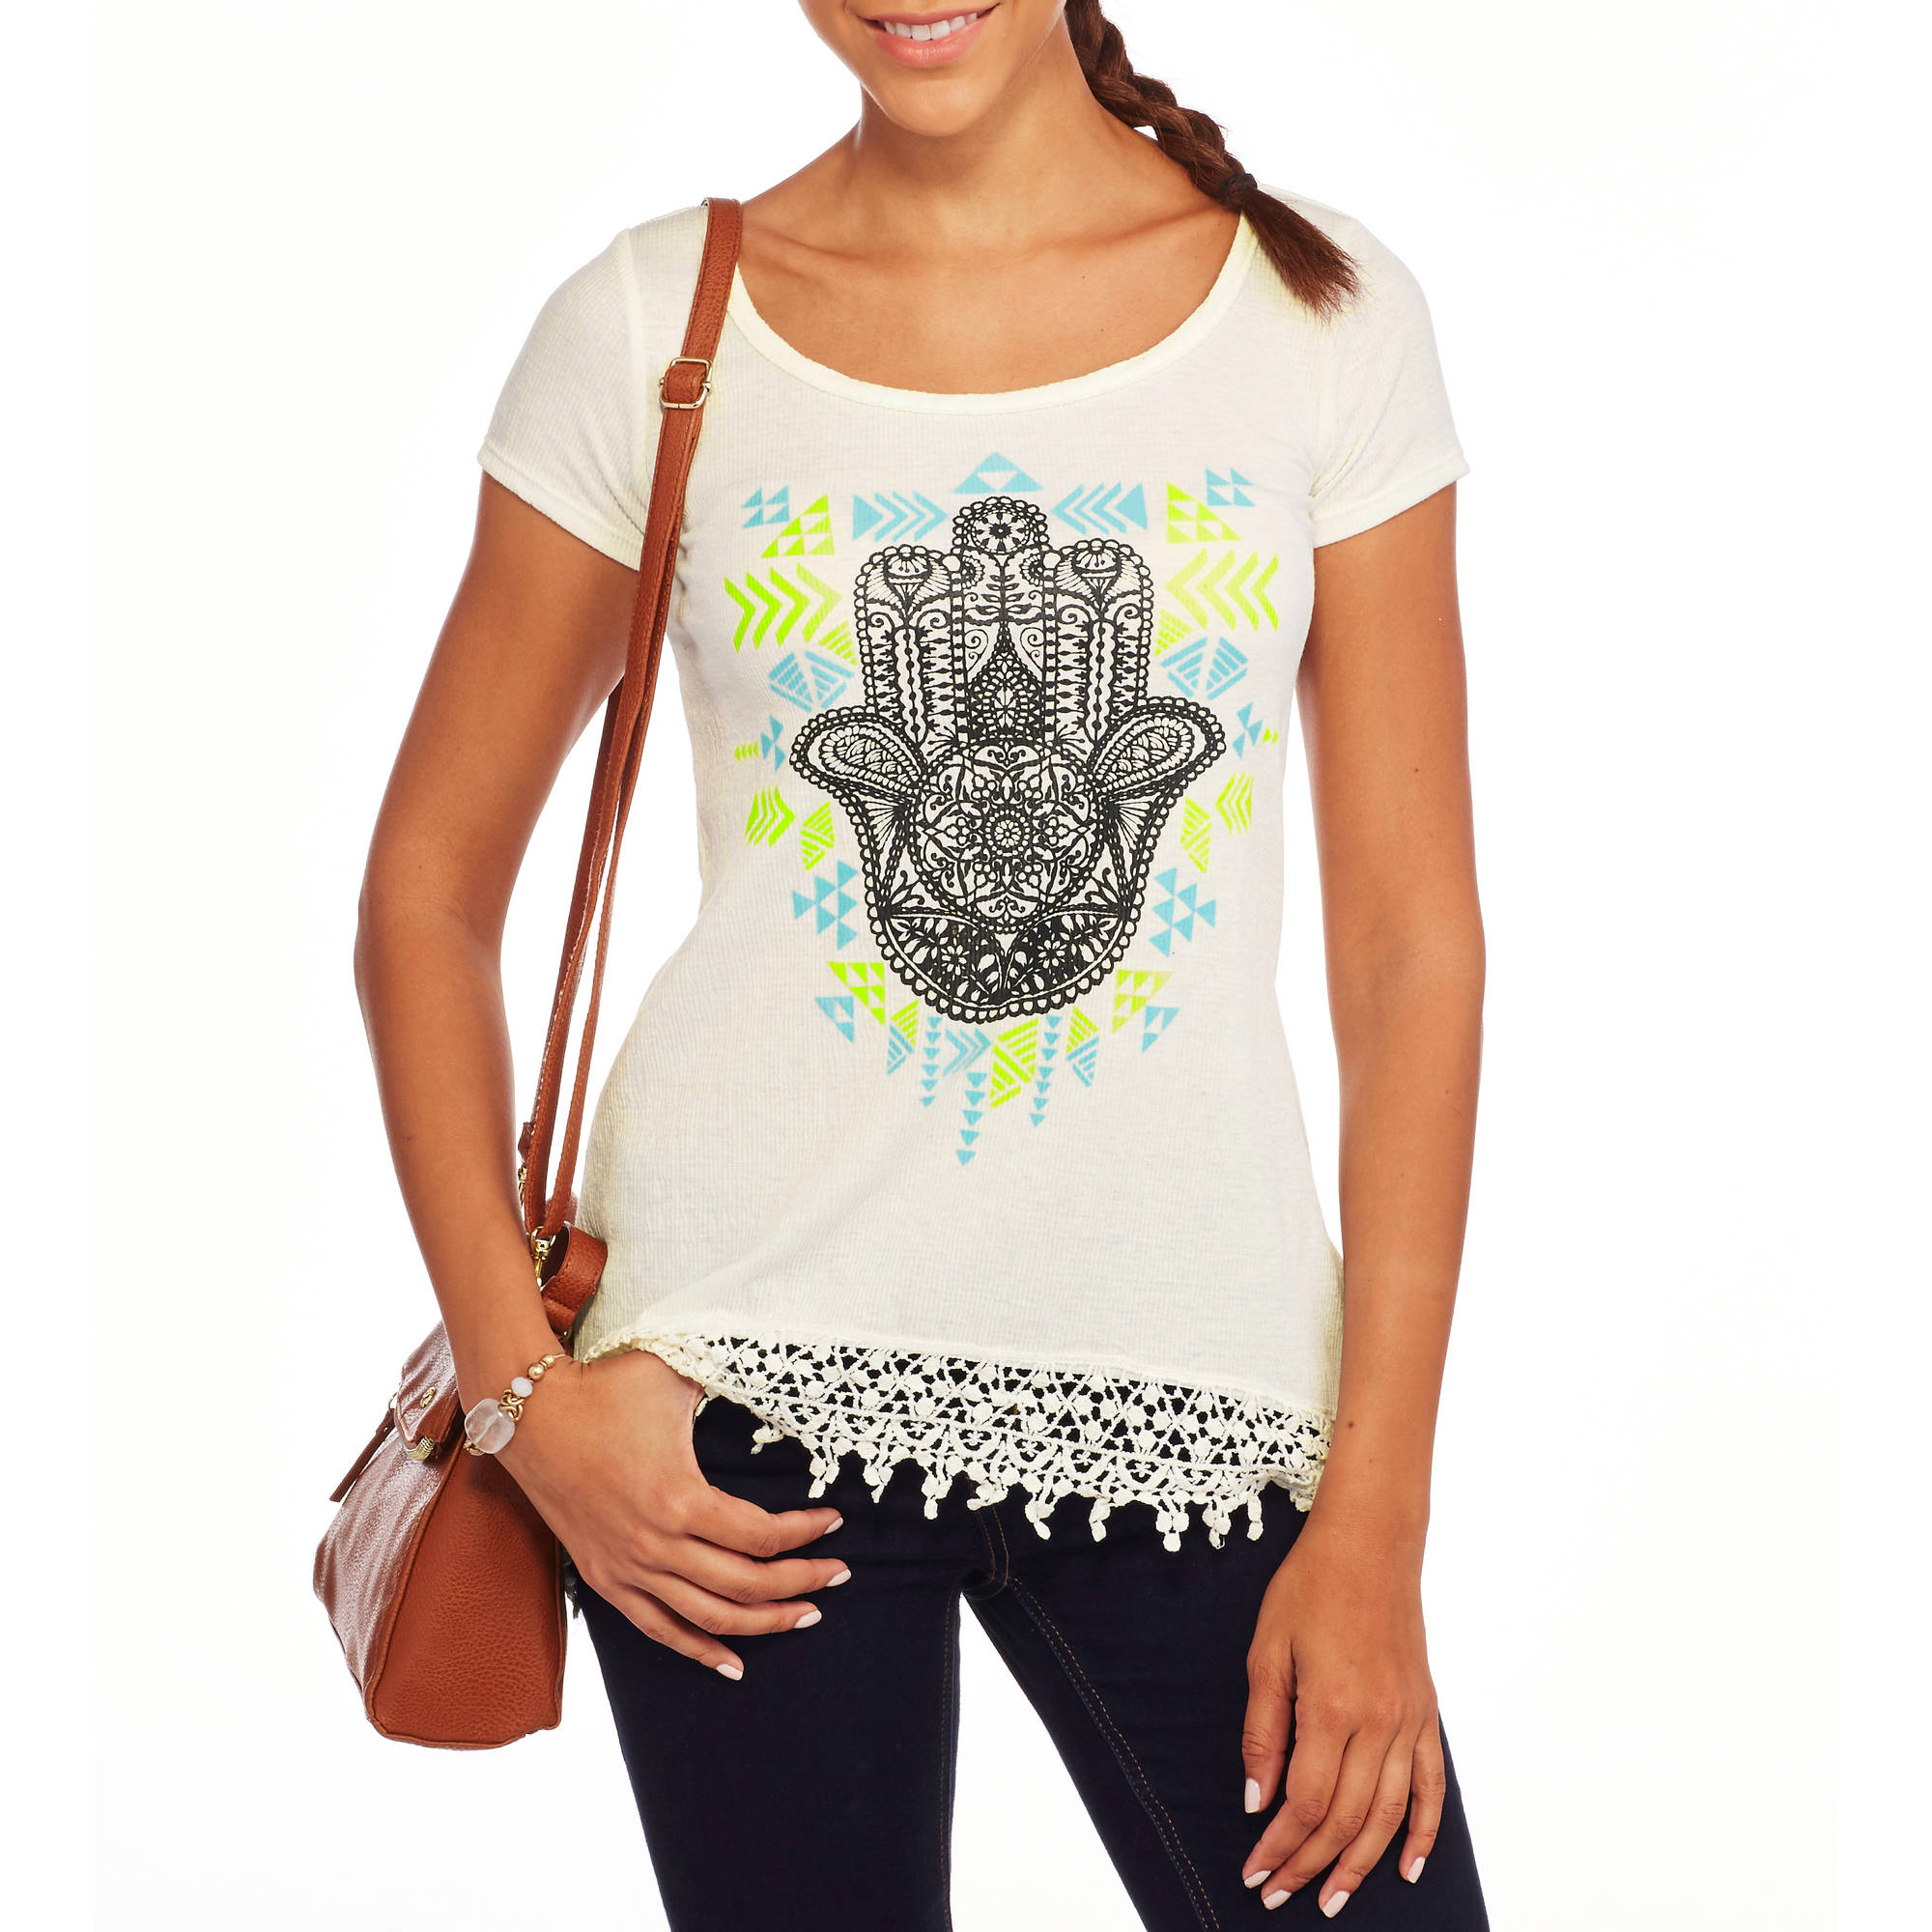 French Laundry Women's Graphic Tee With Crochet Trim